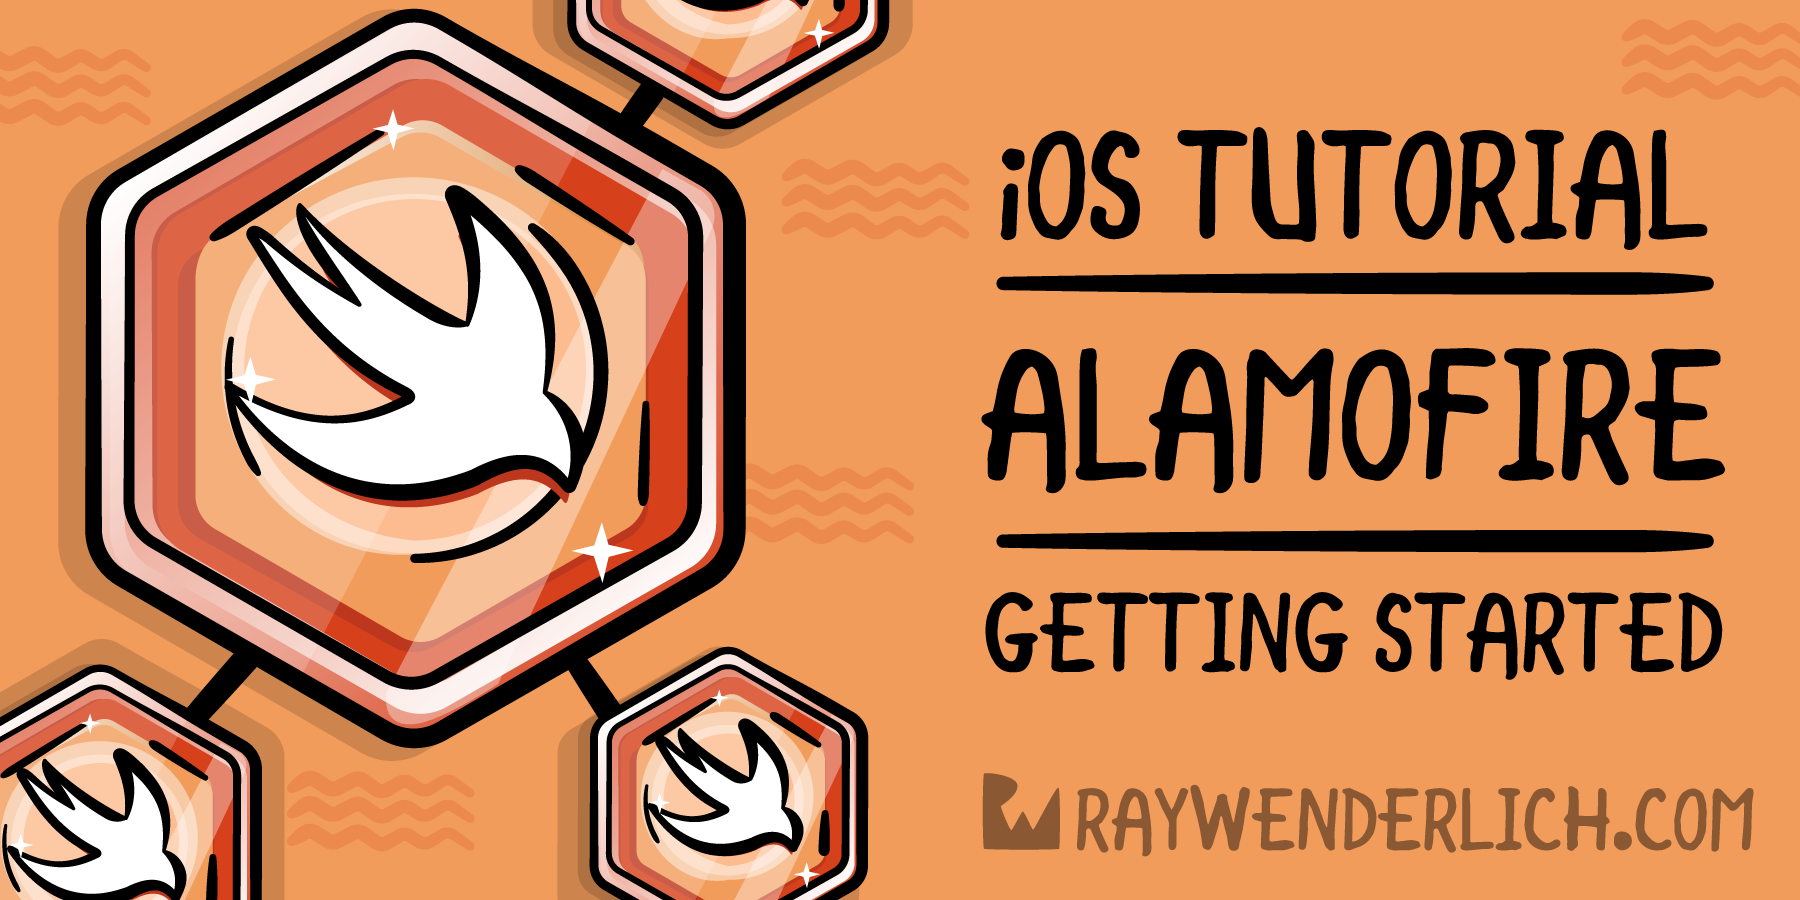 Alamofire Tutorial for iOS: Getting Started [FREE]